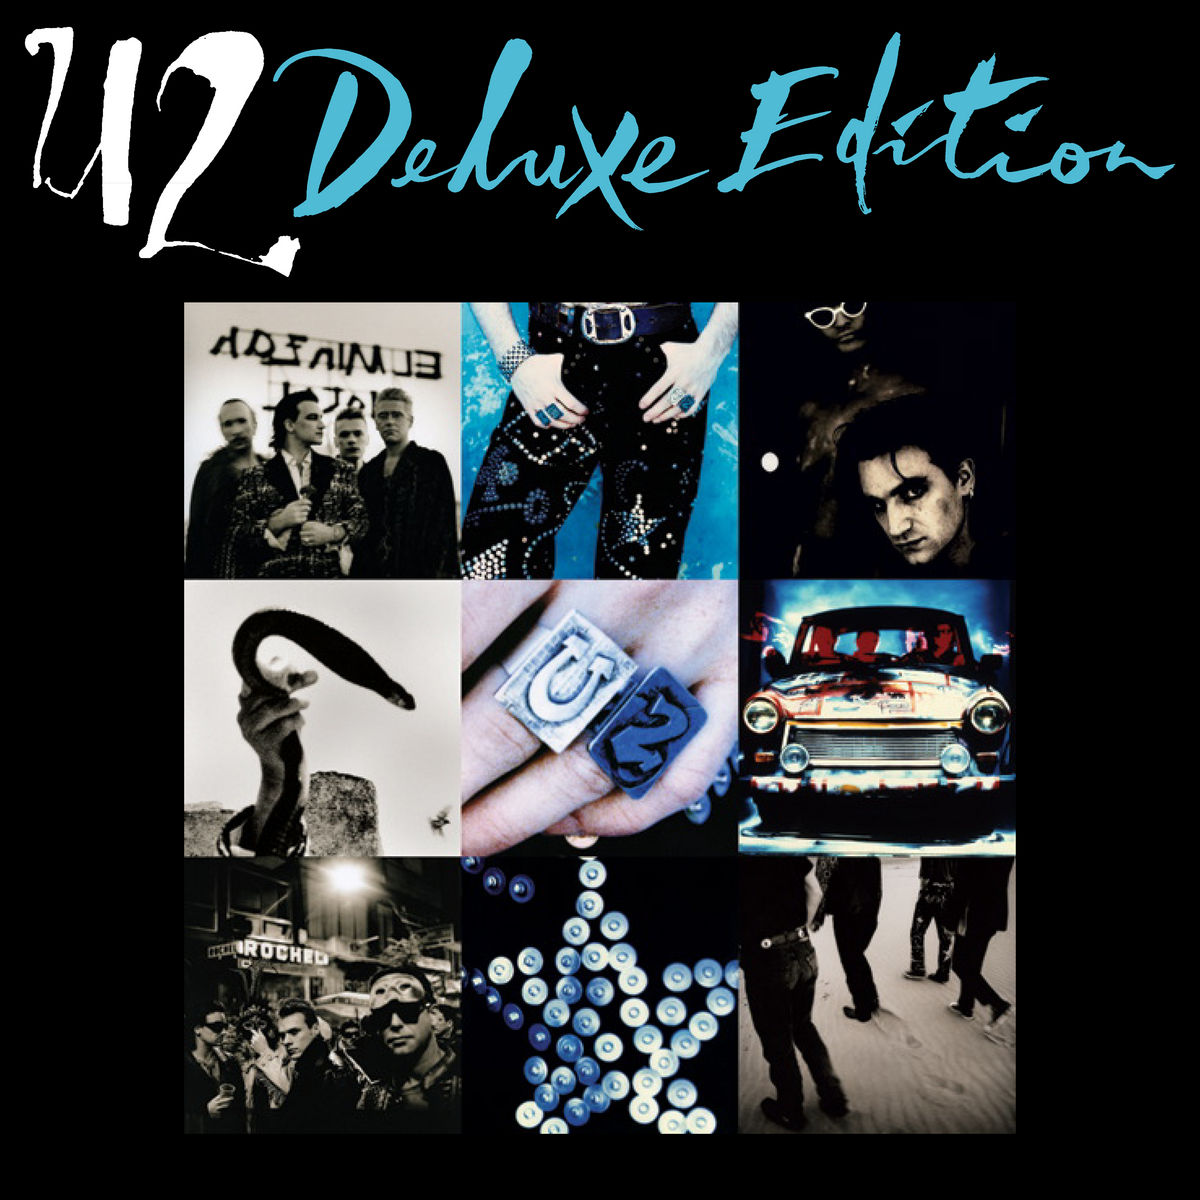 Achtung baby (Deluxe edition)